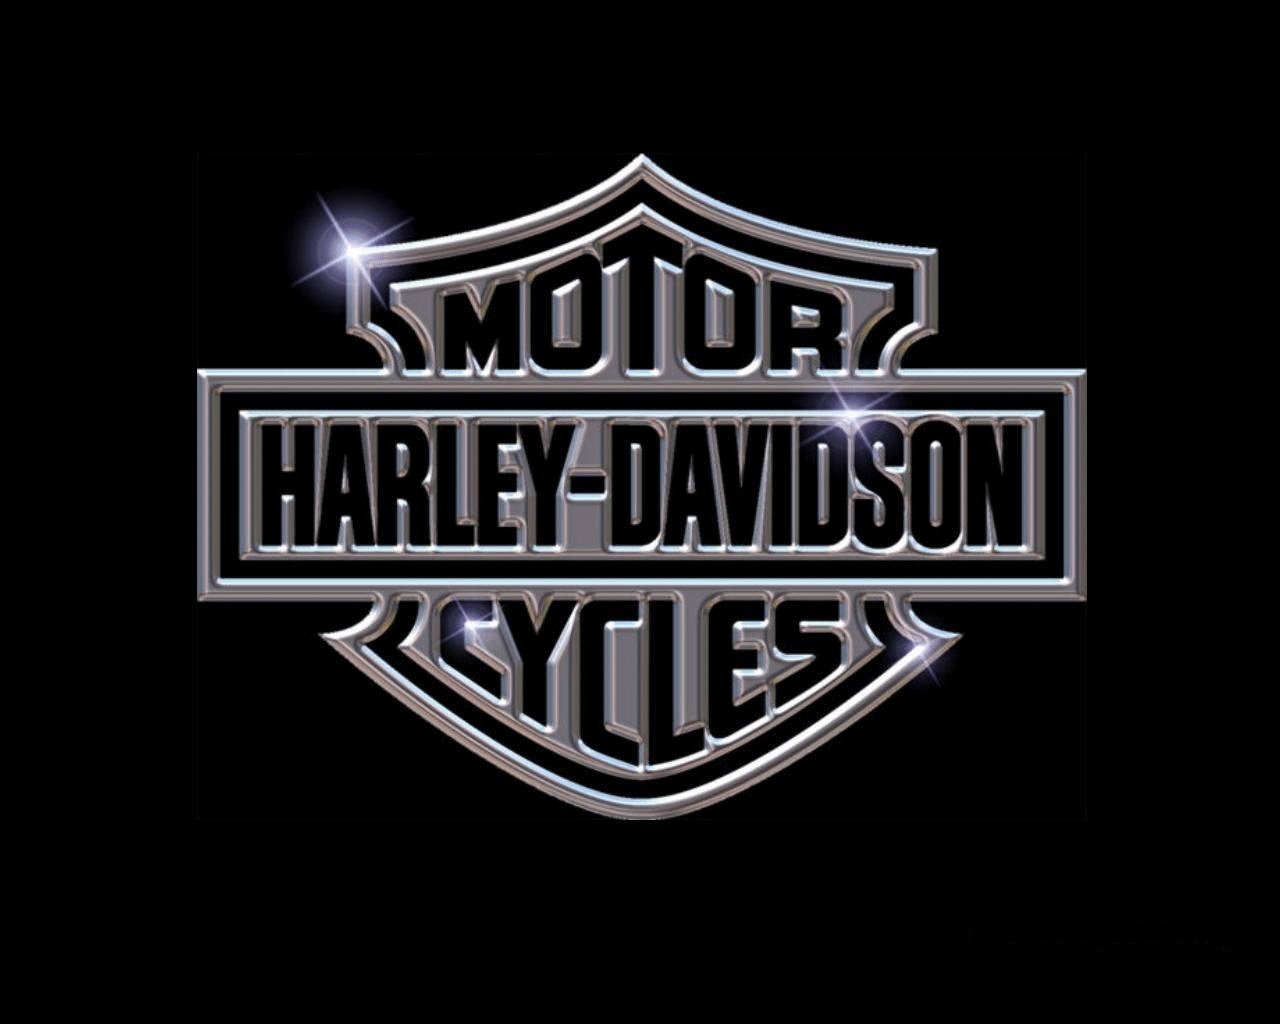 1000 Harley Davidson Wallpaper Harley Davidson Wallpaper 1280x1024